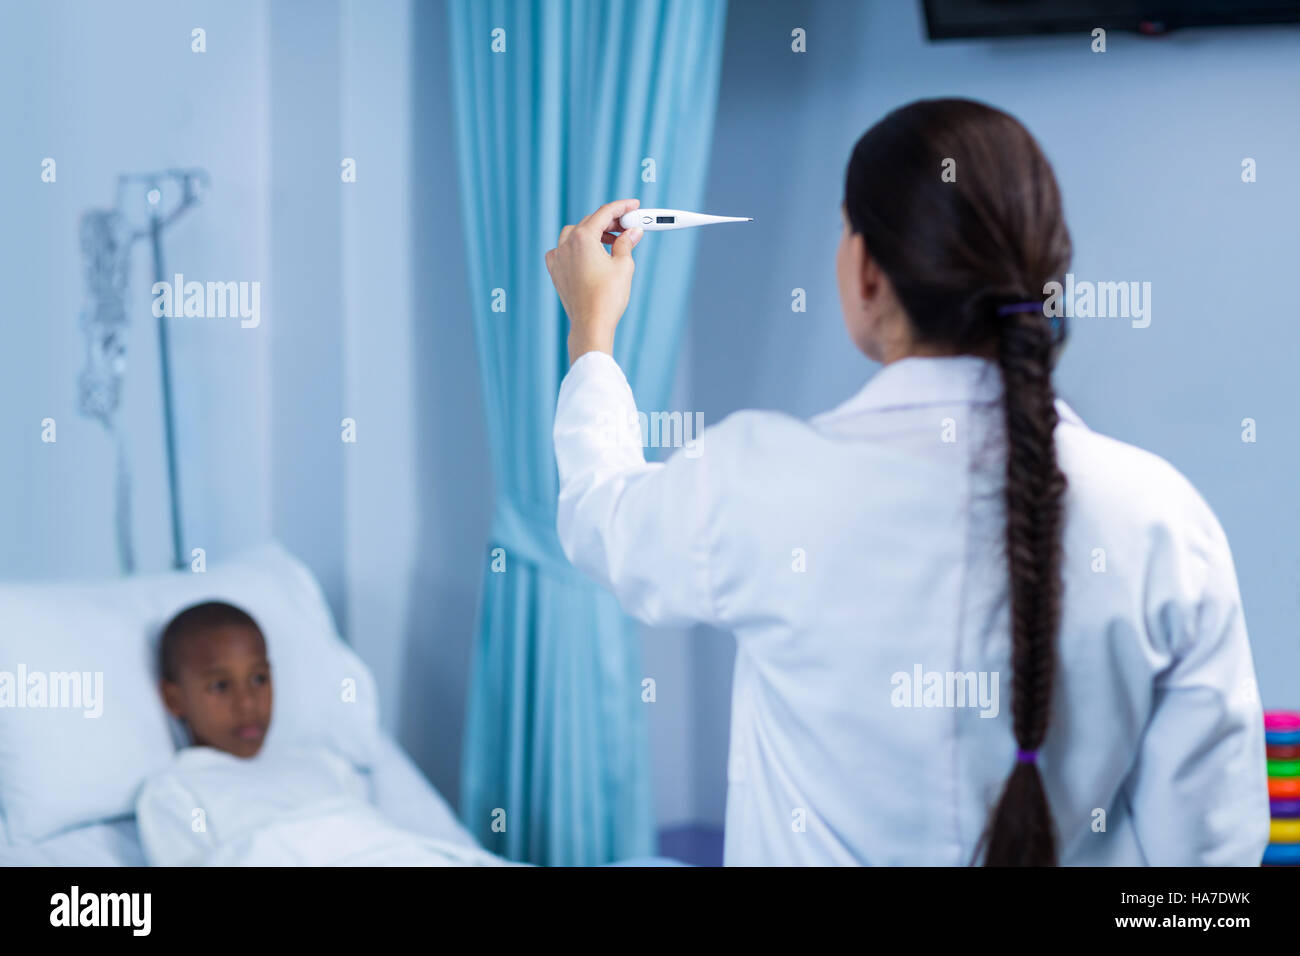 Female Doctor Checking Fever From Digital Thermometer Stock Photo